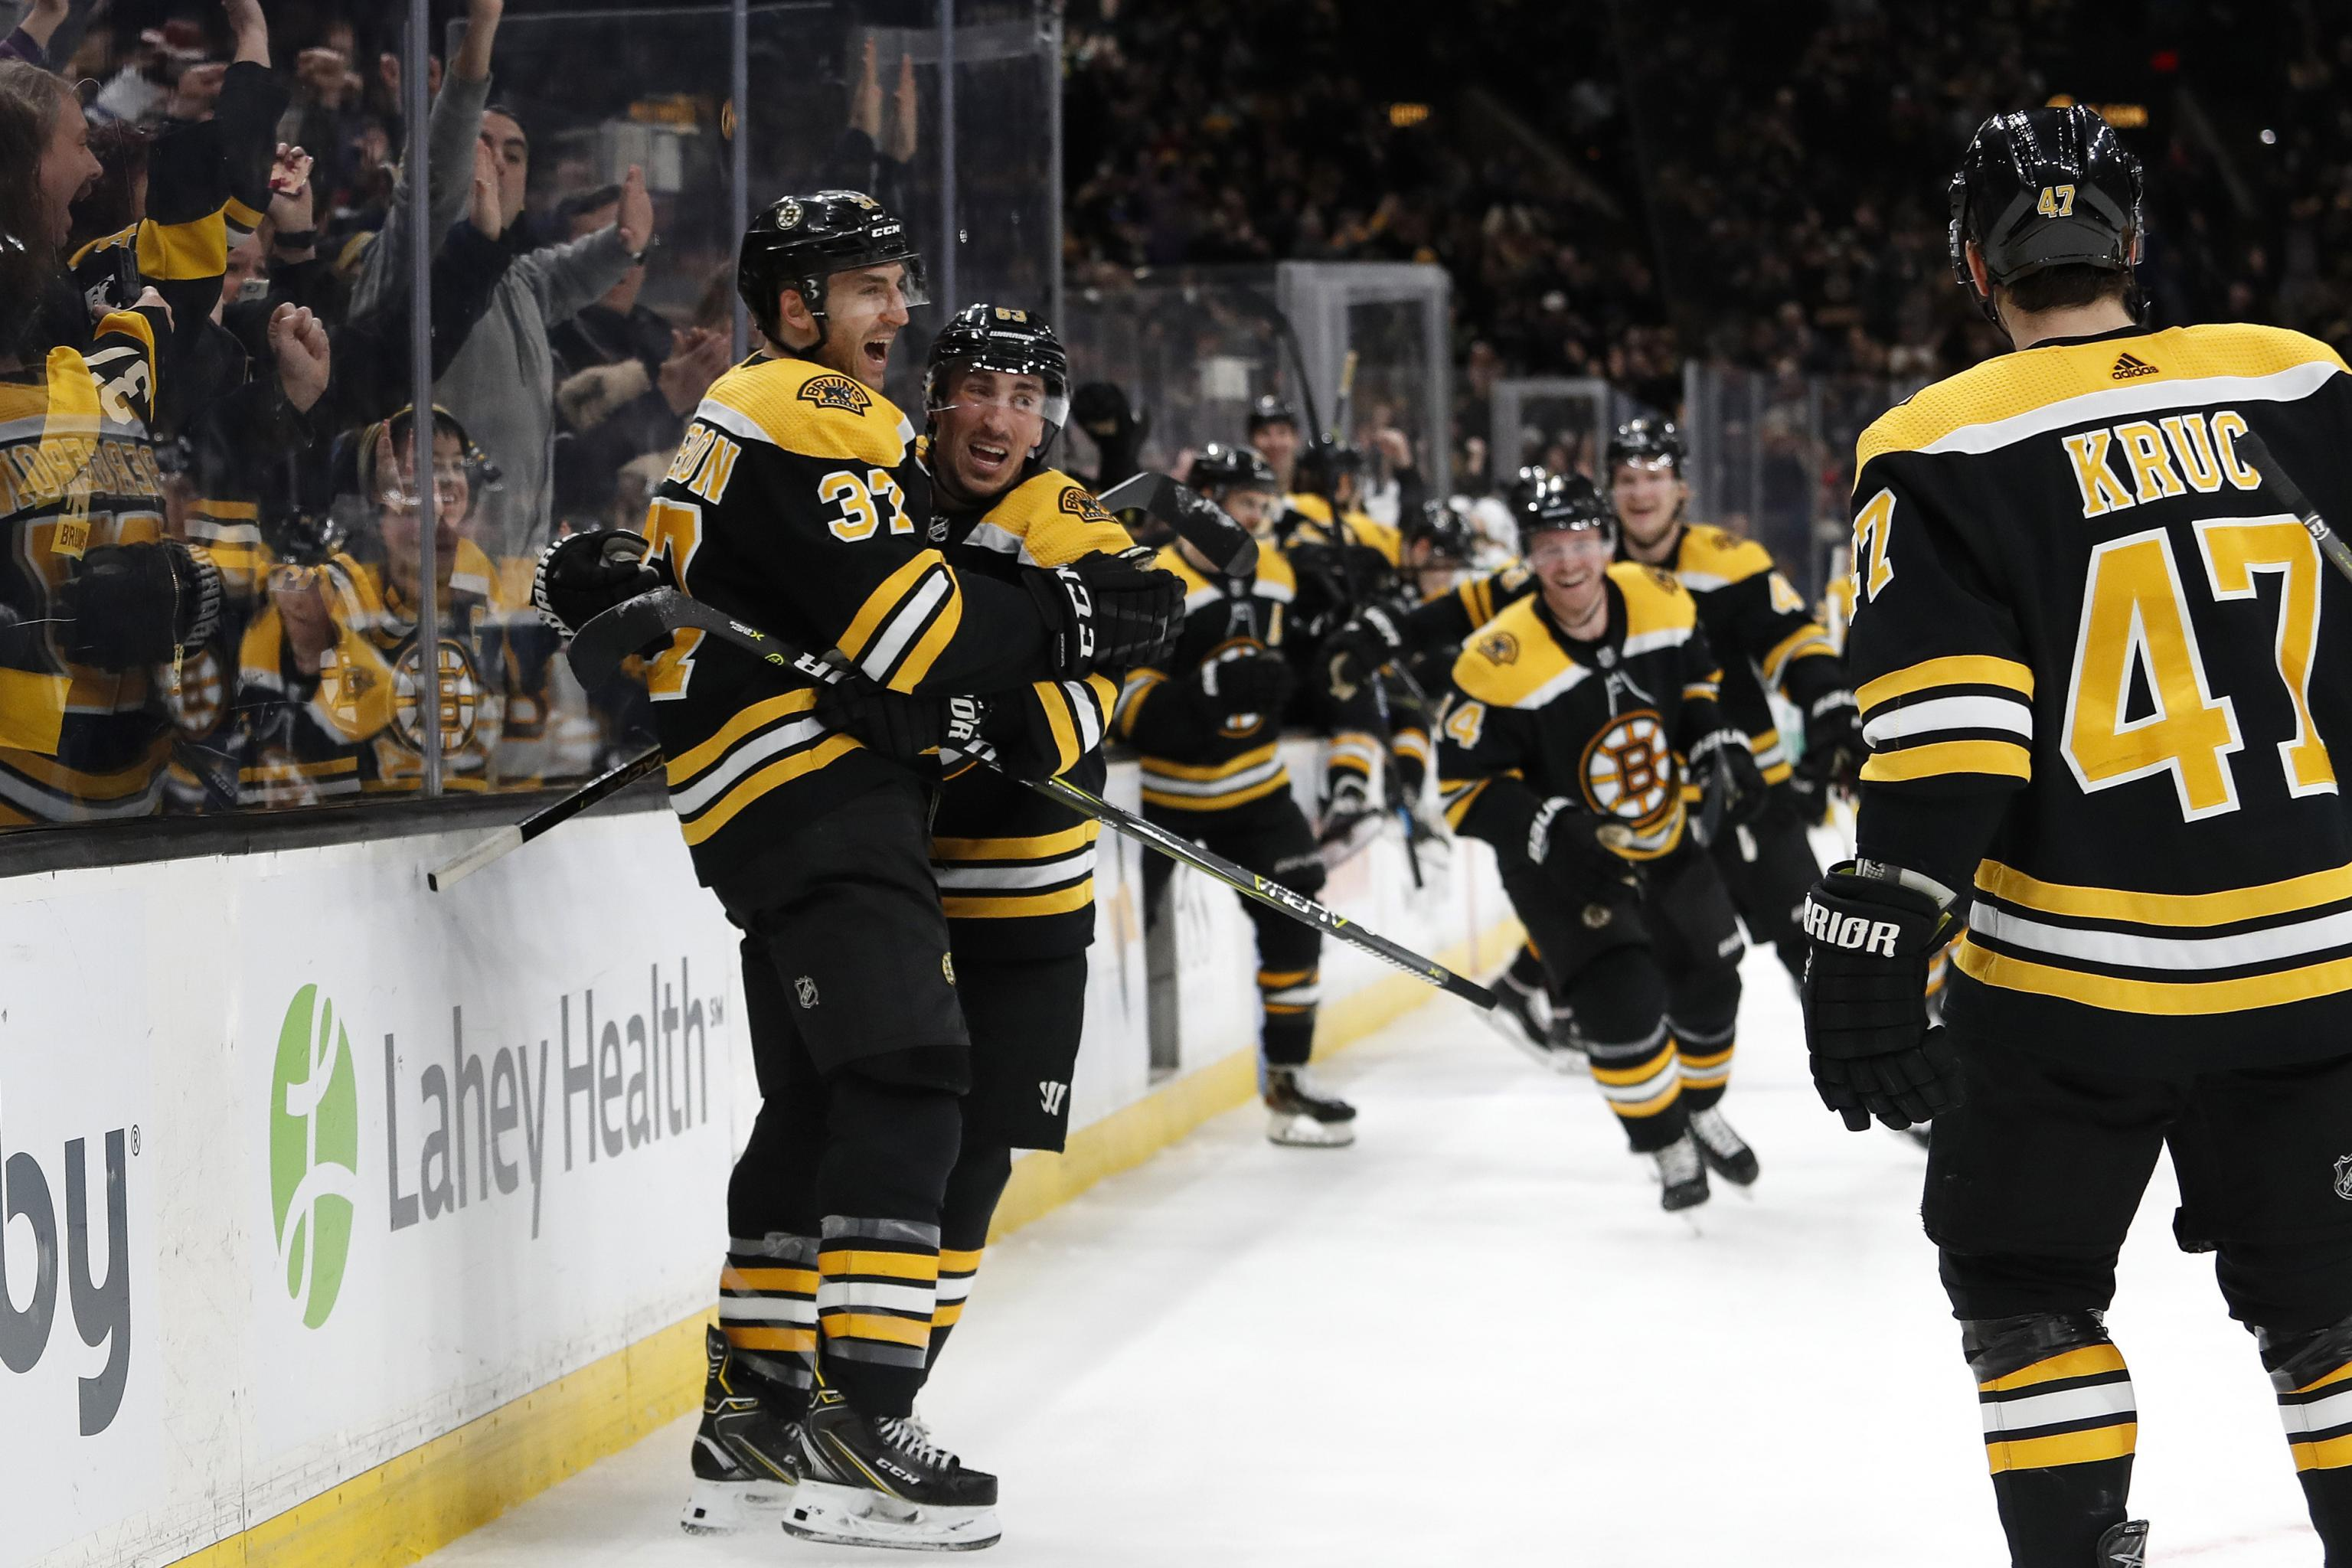 Patrice Bergeron Tyler Johnson And The Top Highlights For February 9 Bleacher Report Latest News Videos And Highlights